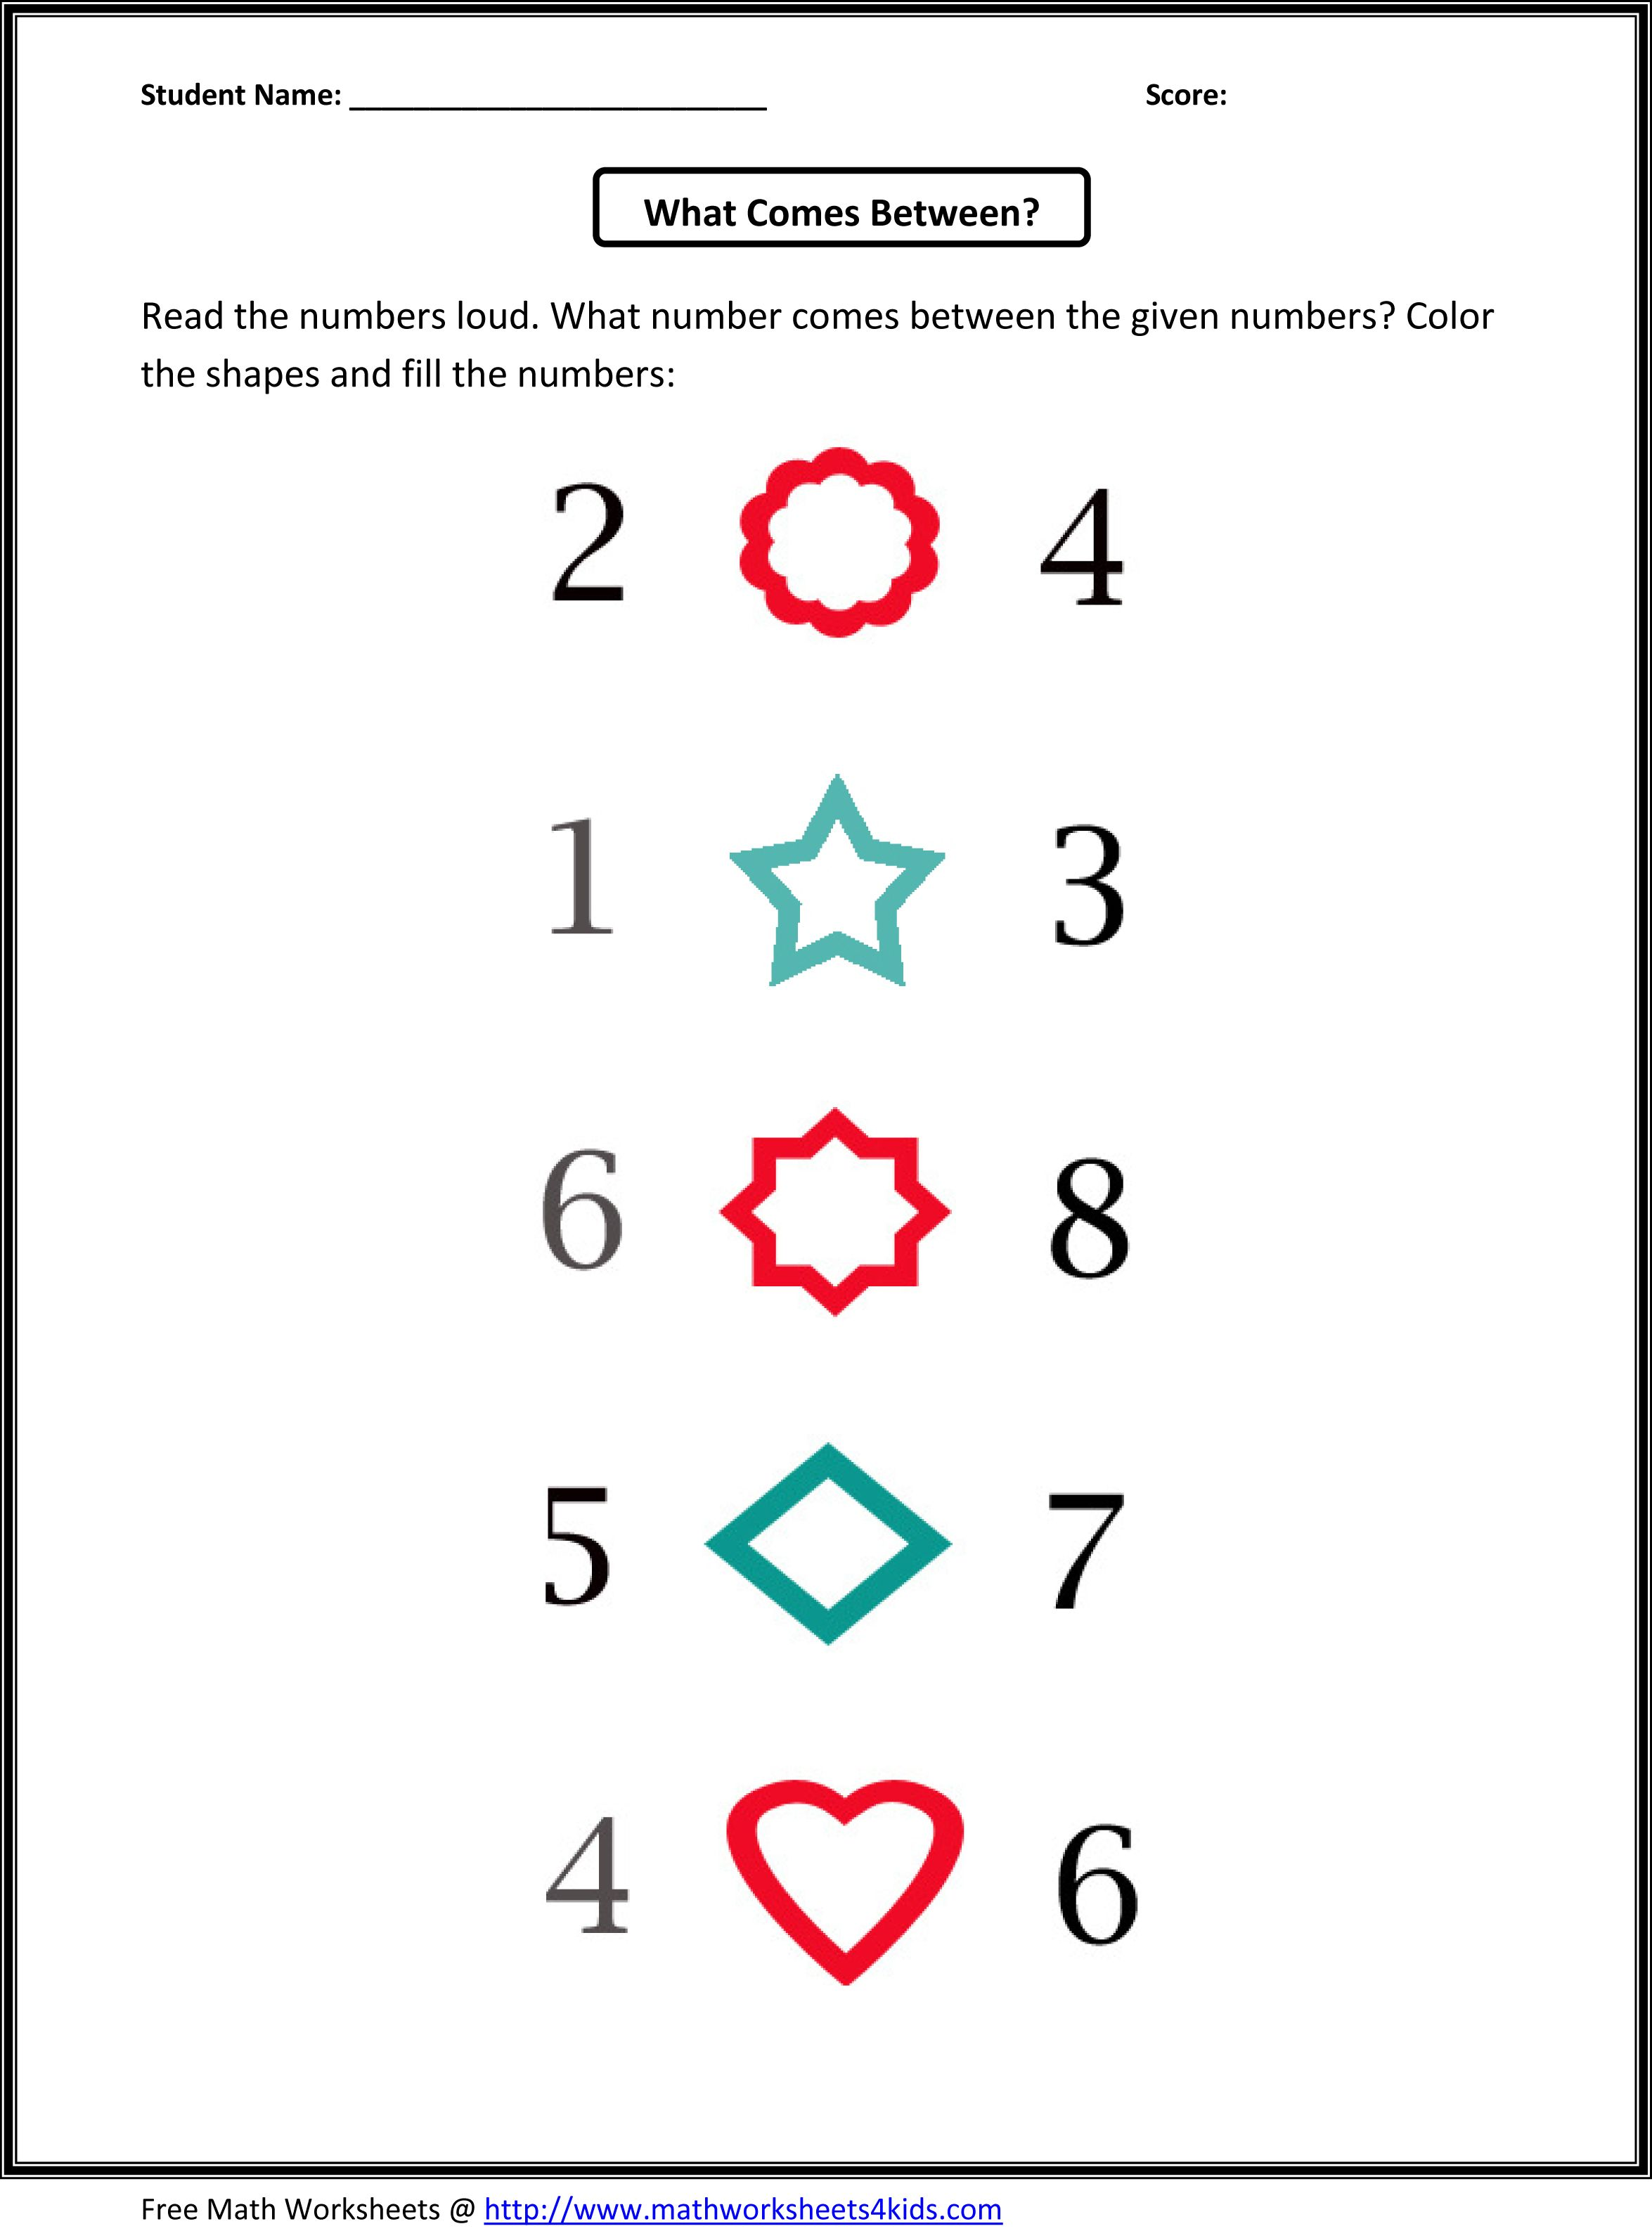 Kindergarten Counting Worksheets 1 10